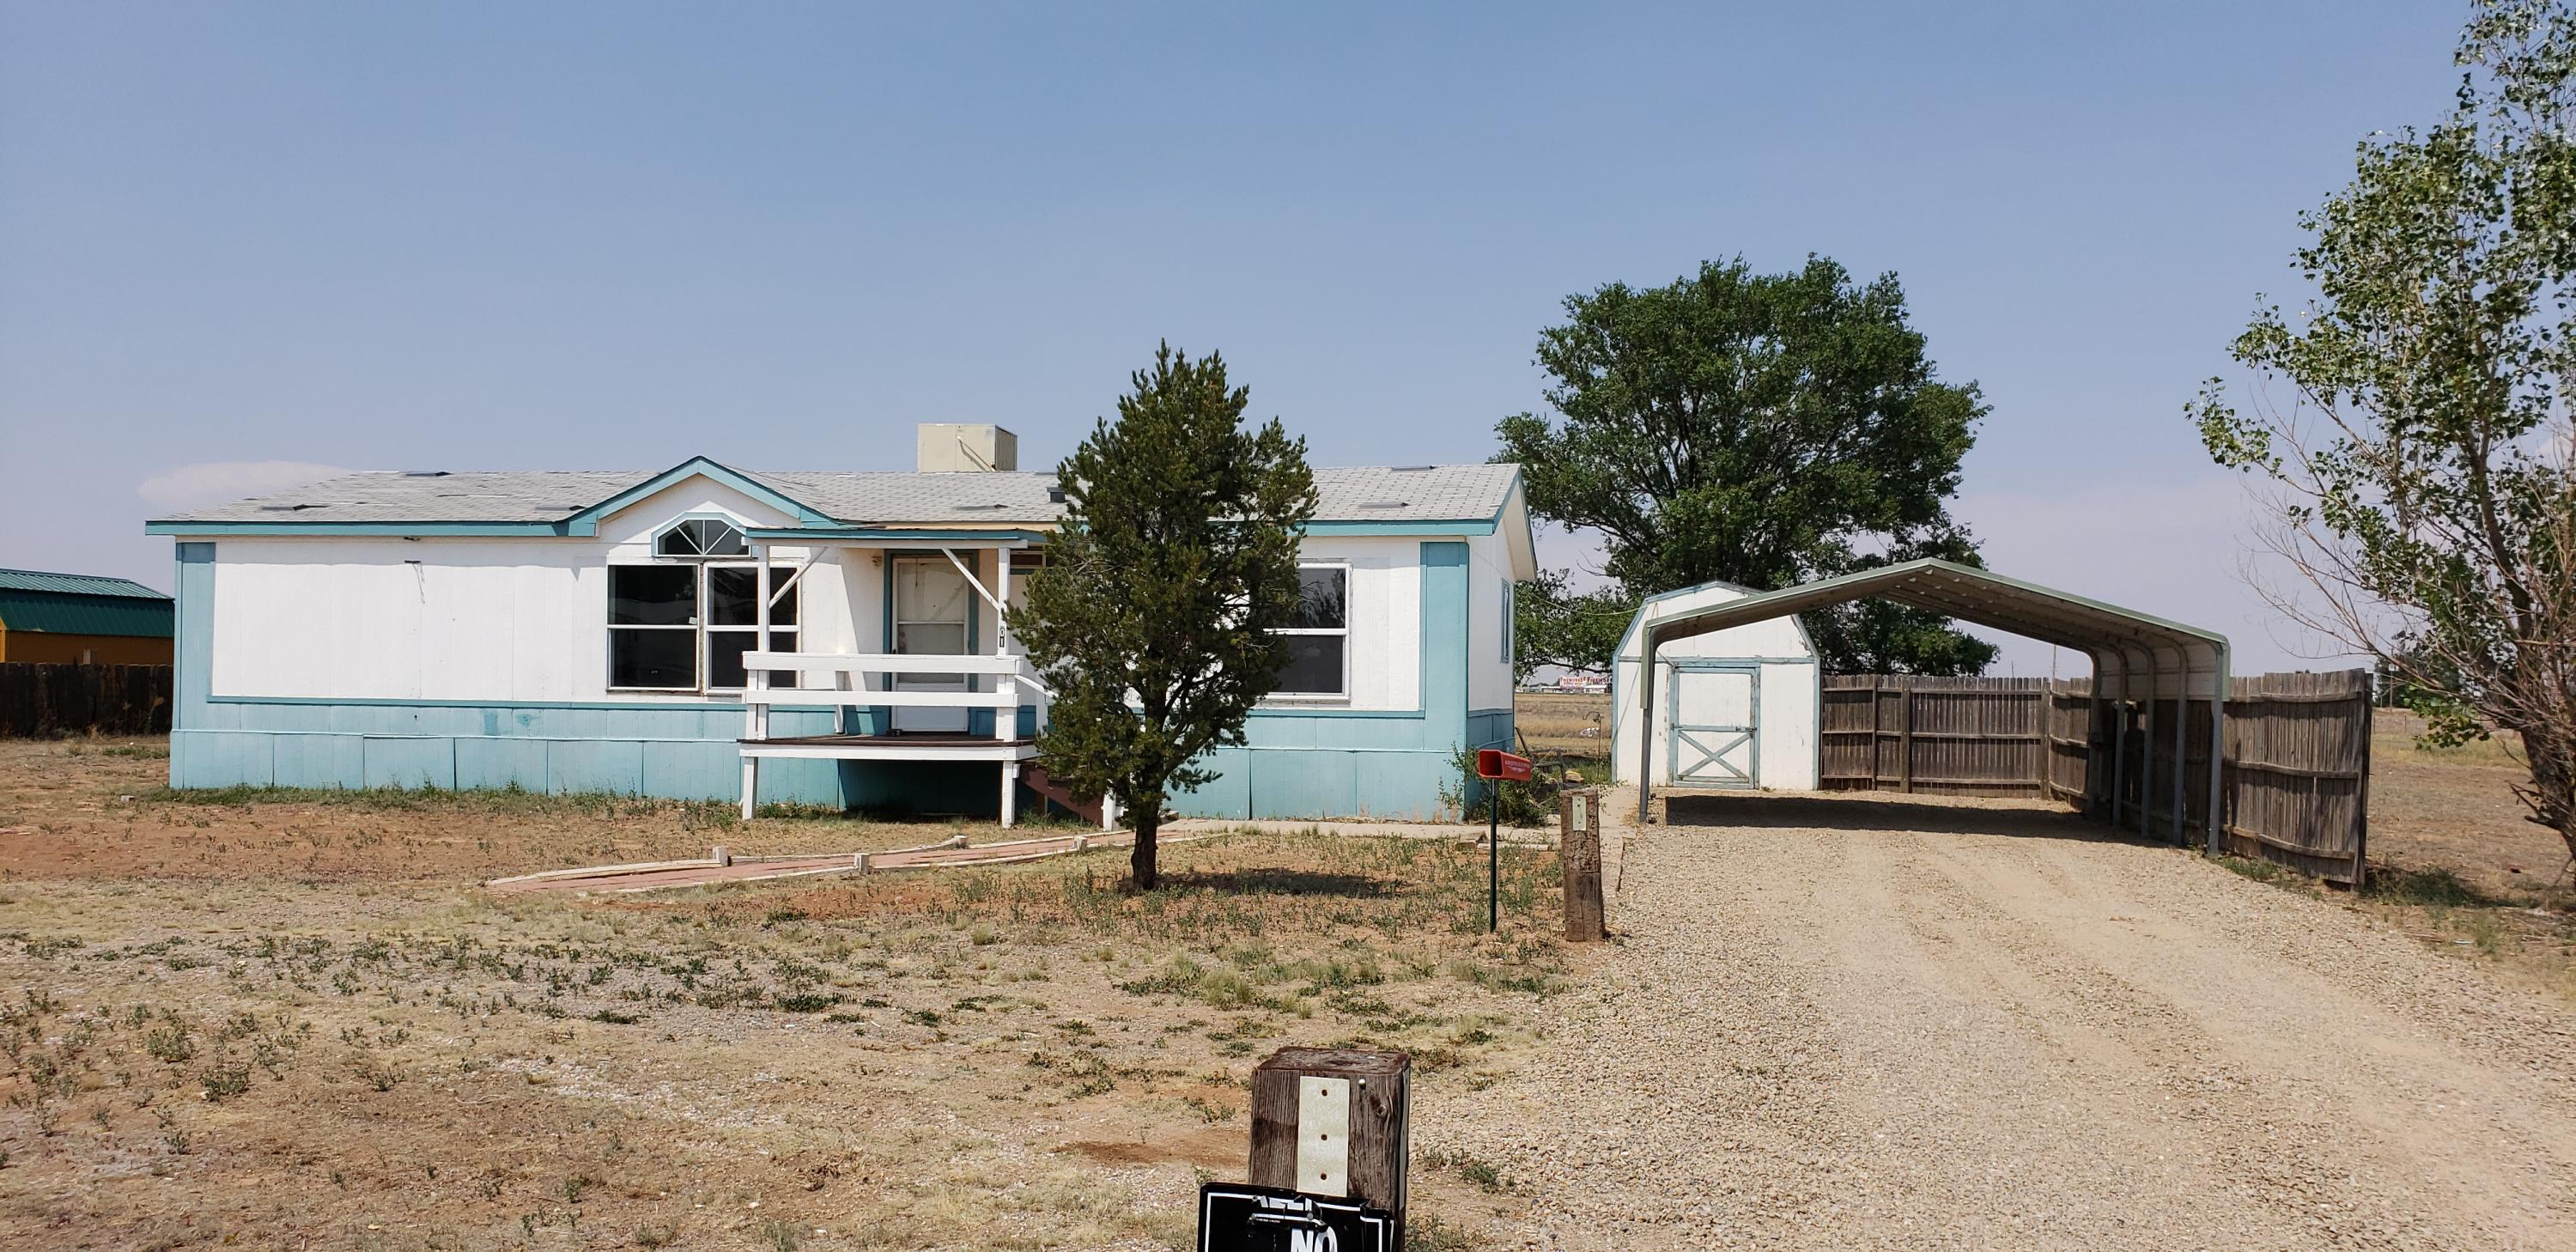 Great location! Great starter home with room for all of your ''toys''!! Corner lot with easy access for an RV. New flooring and carpet! Large master bath, storage shed, and carport. NEW ROOF being installed in 2-3 weeks! Come on by....see yourself living there, fall in love, and make an offer!!